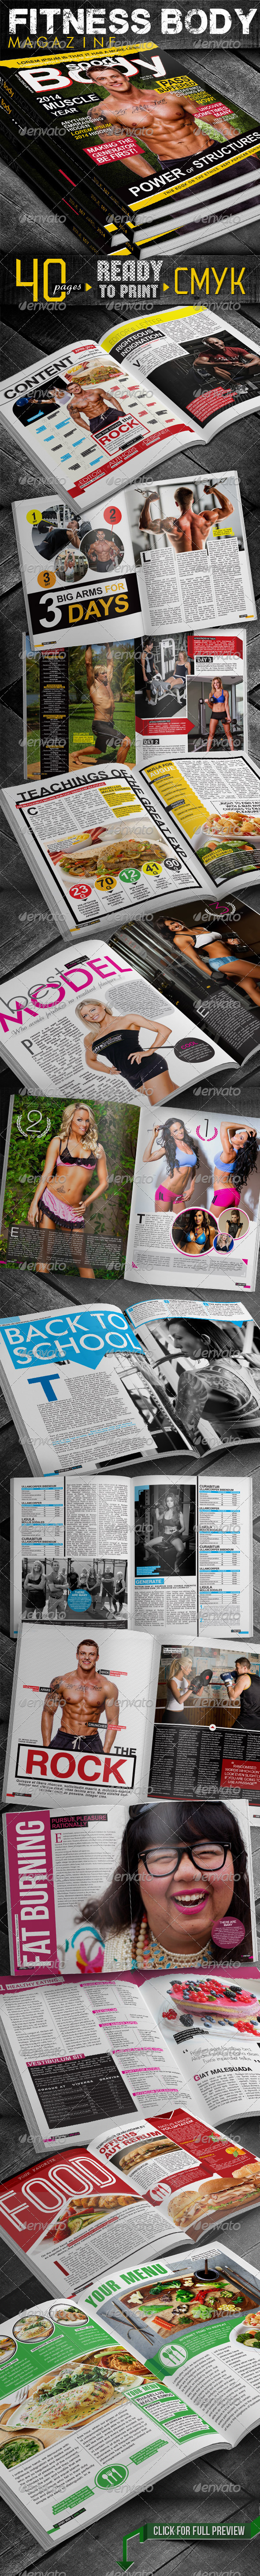 GraphicRiver A3 Fitness Body Magazine 7893165